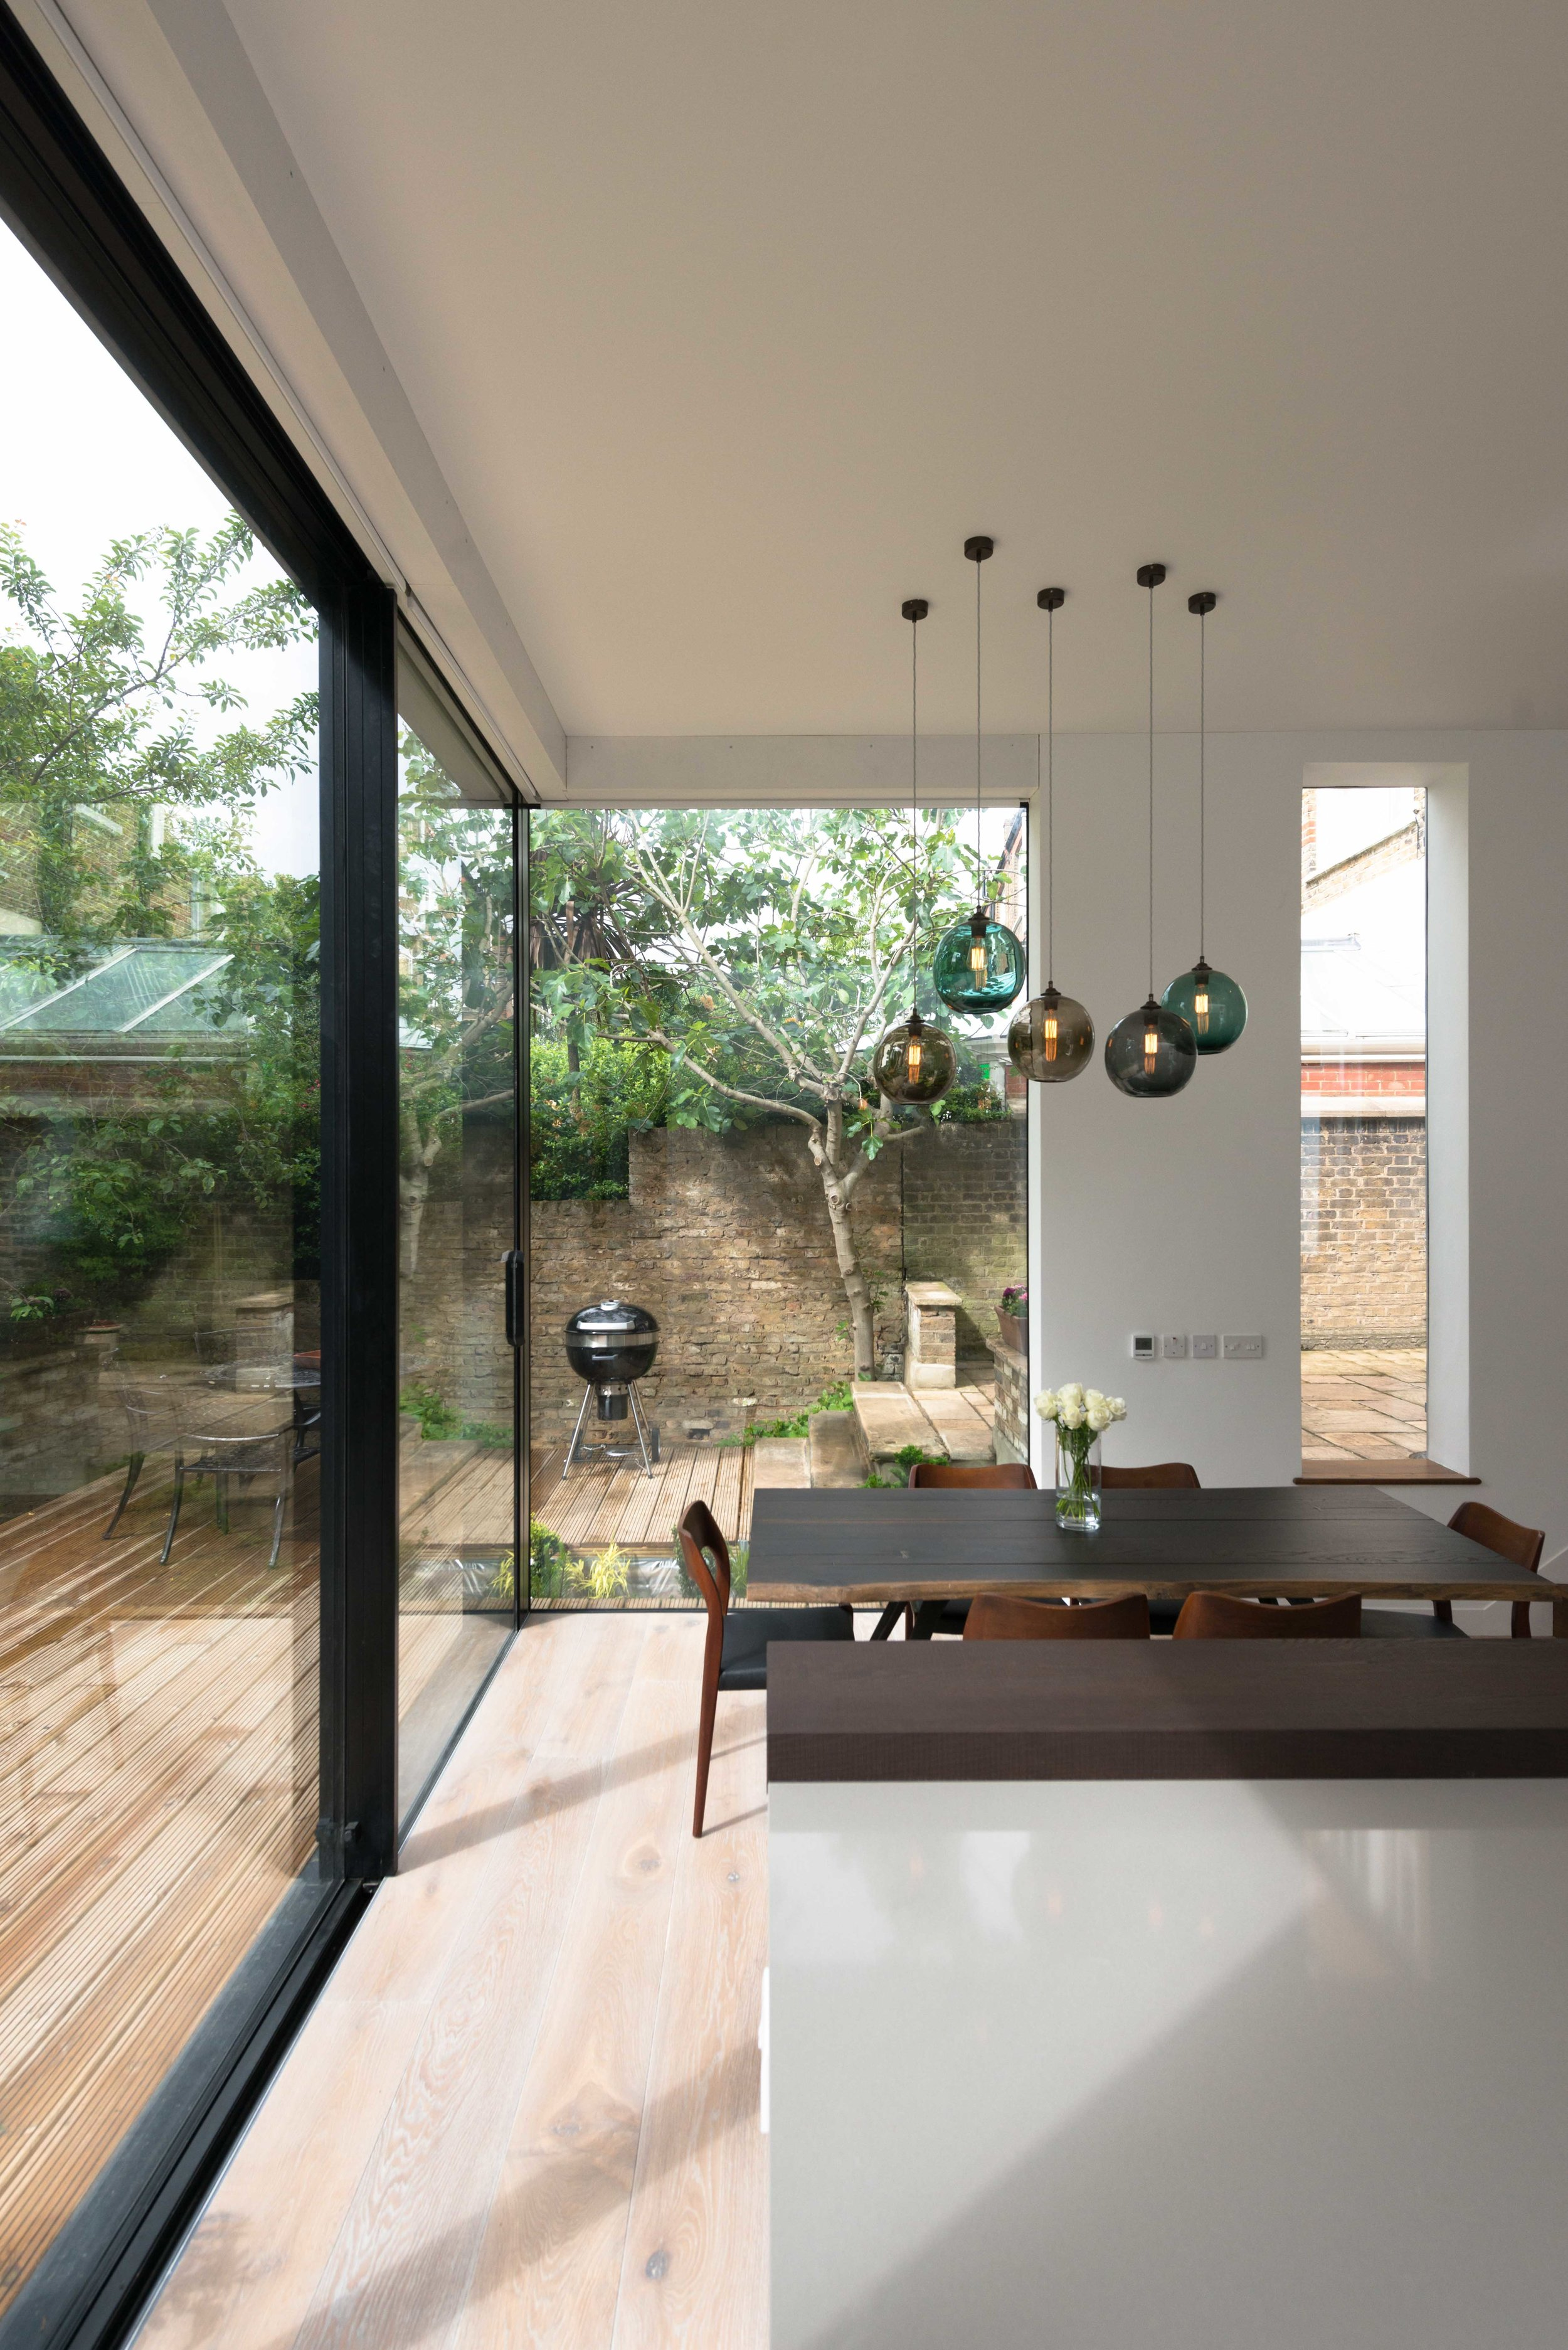 Canfield Gardens, Hi-Finity by Southern Windows